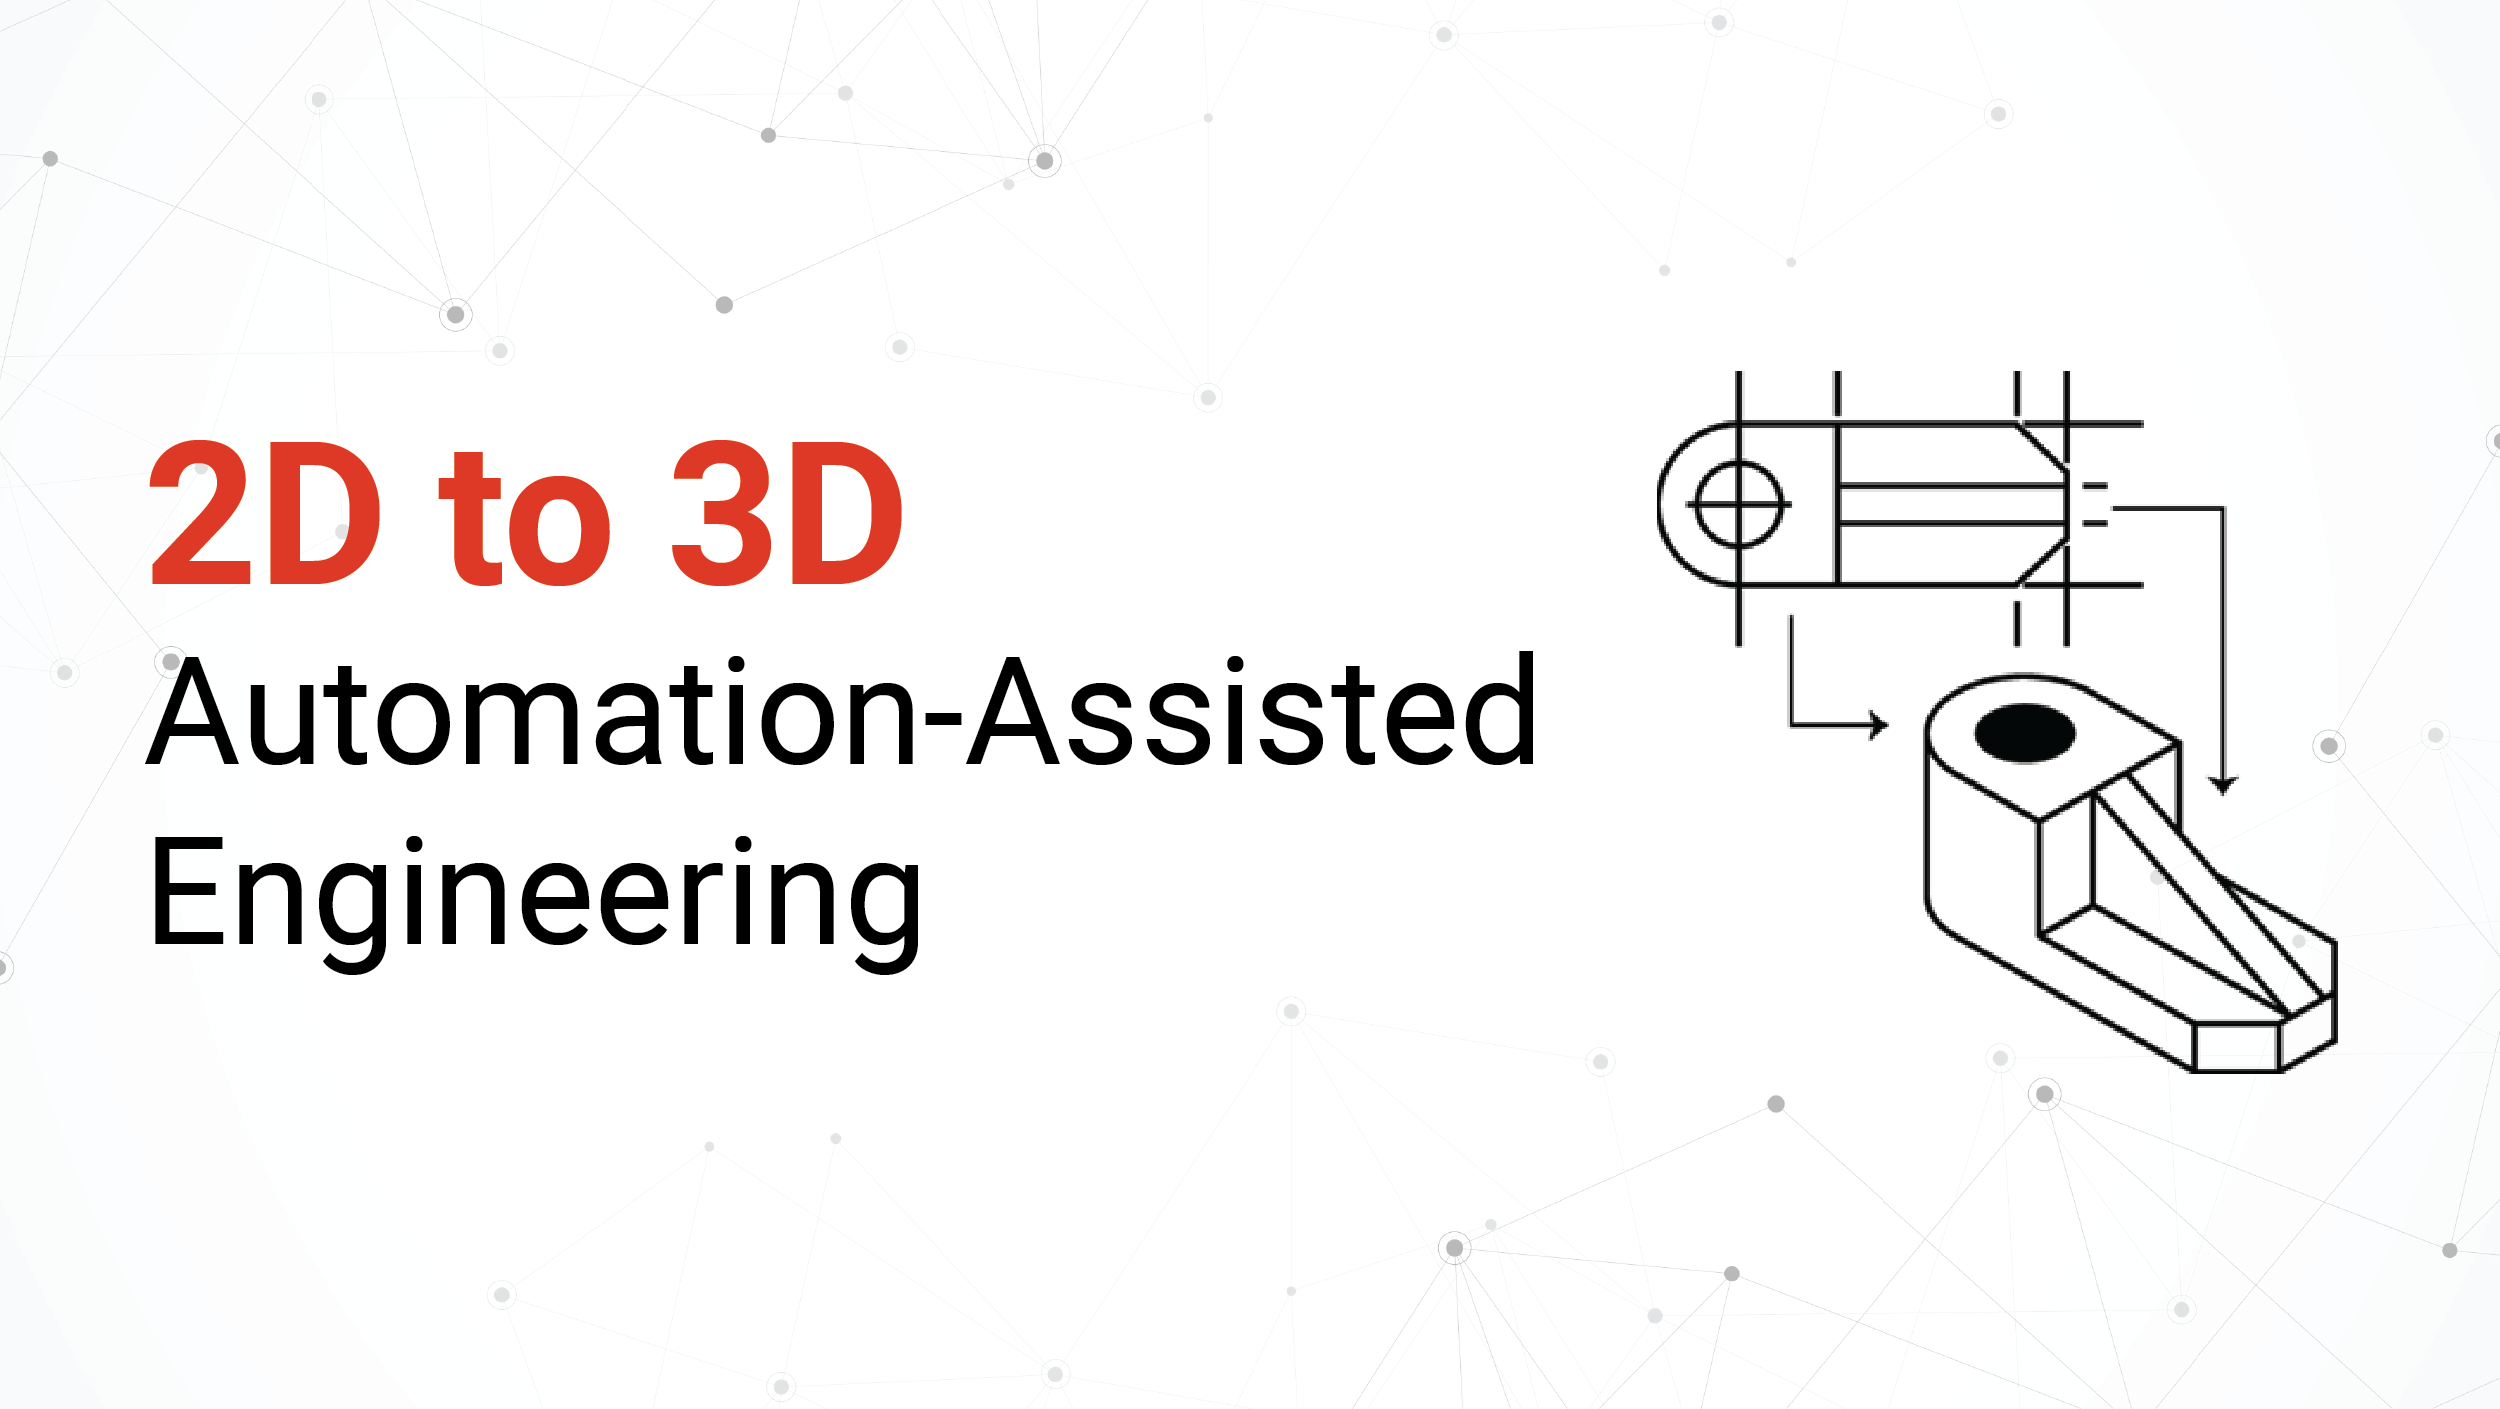 2D to 3D Automation-Assisted Engineering